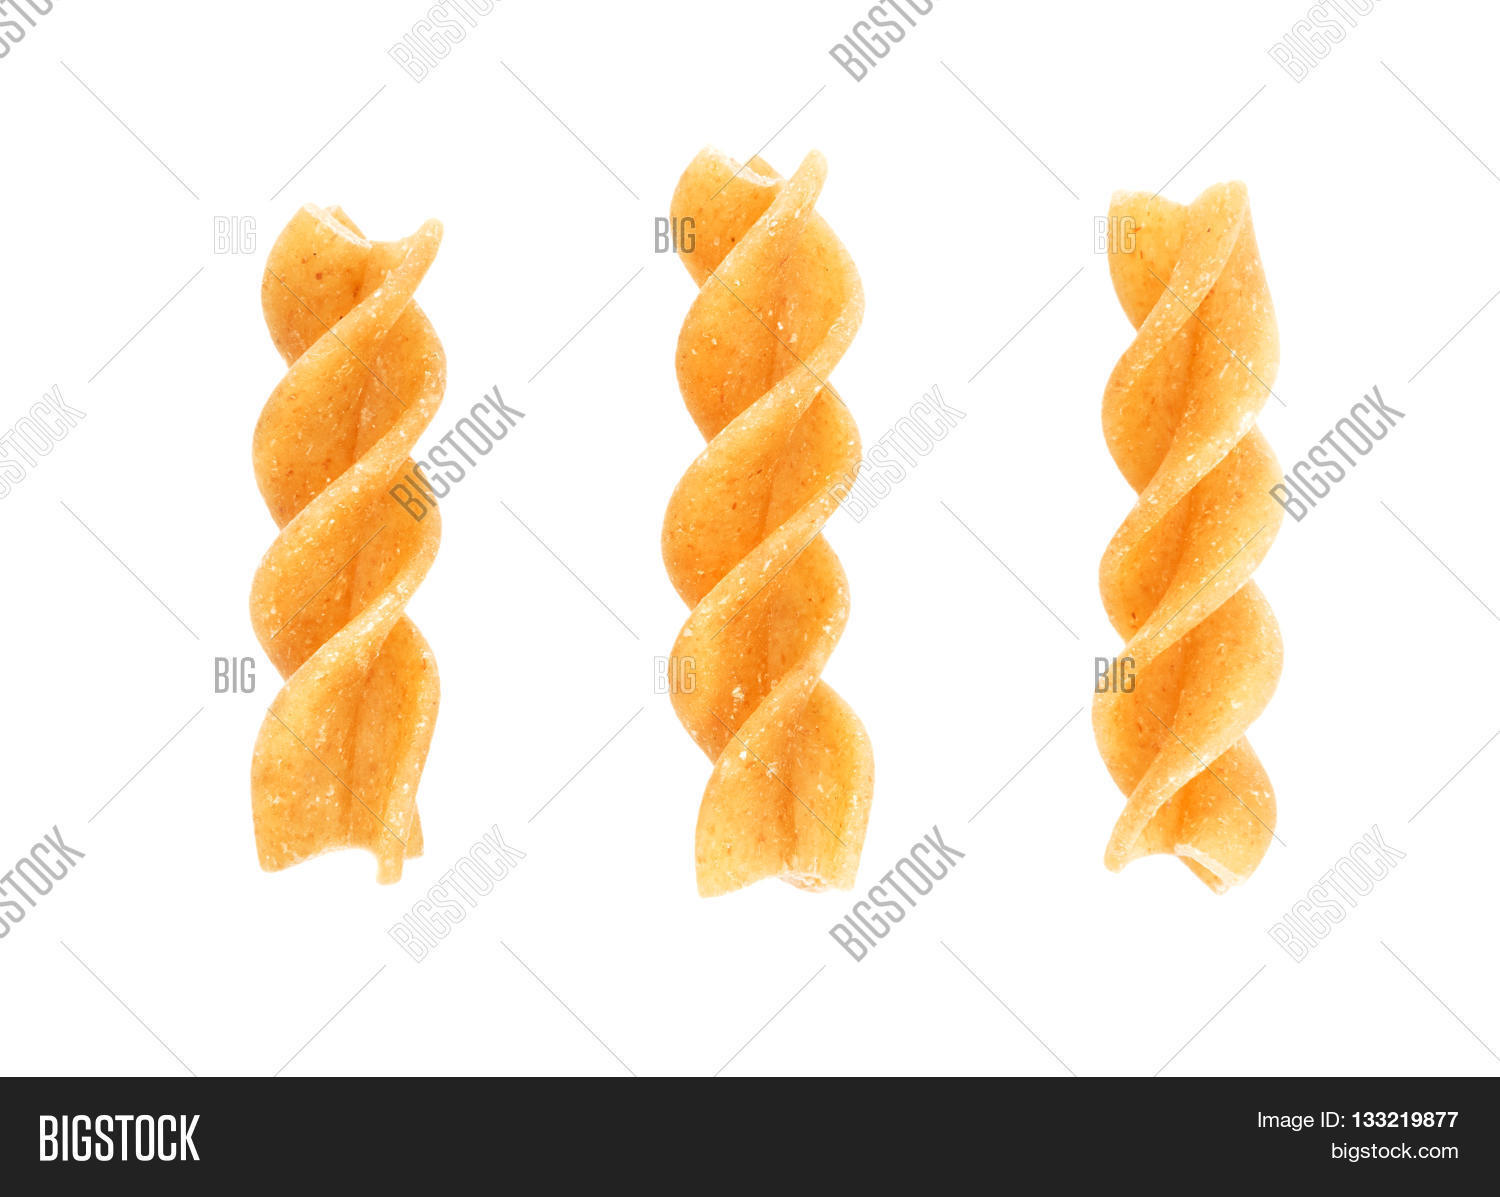 Set of three fusilli traditional italian pasta isolated on white background. Design element for bakery product label, catalog print, web use.